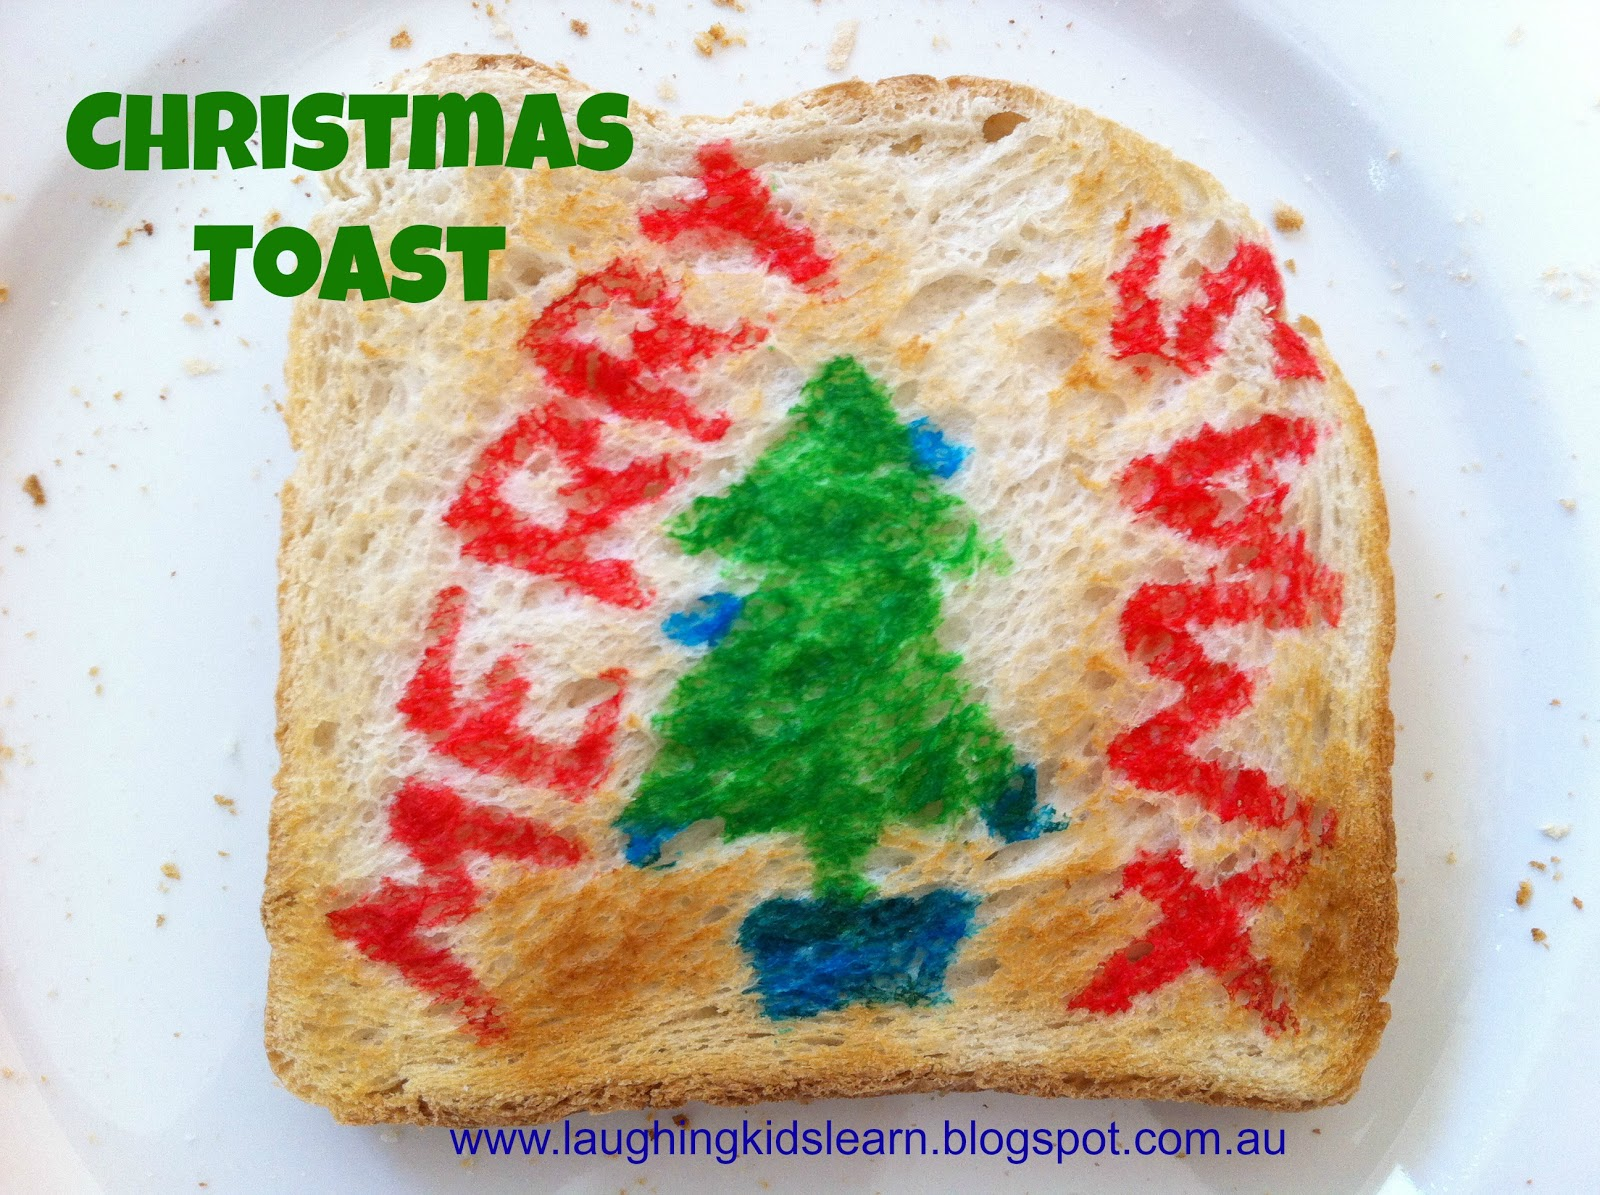 Christmas Toast - Laughing Kids Learn